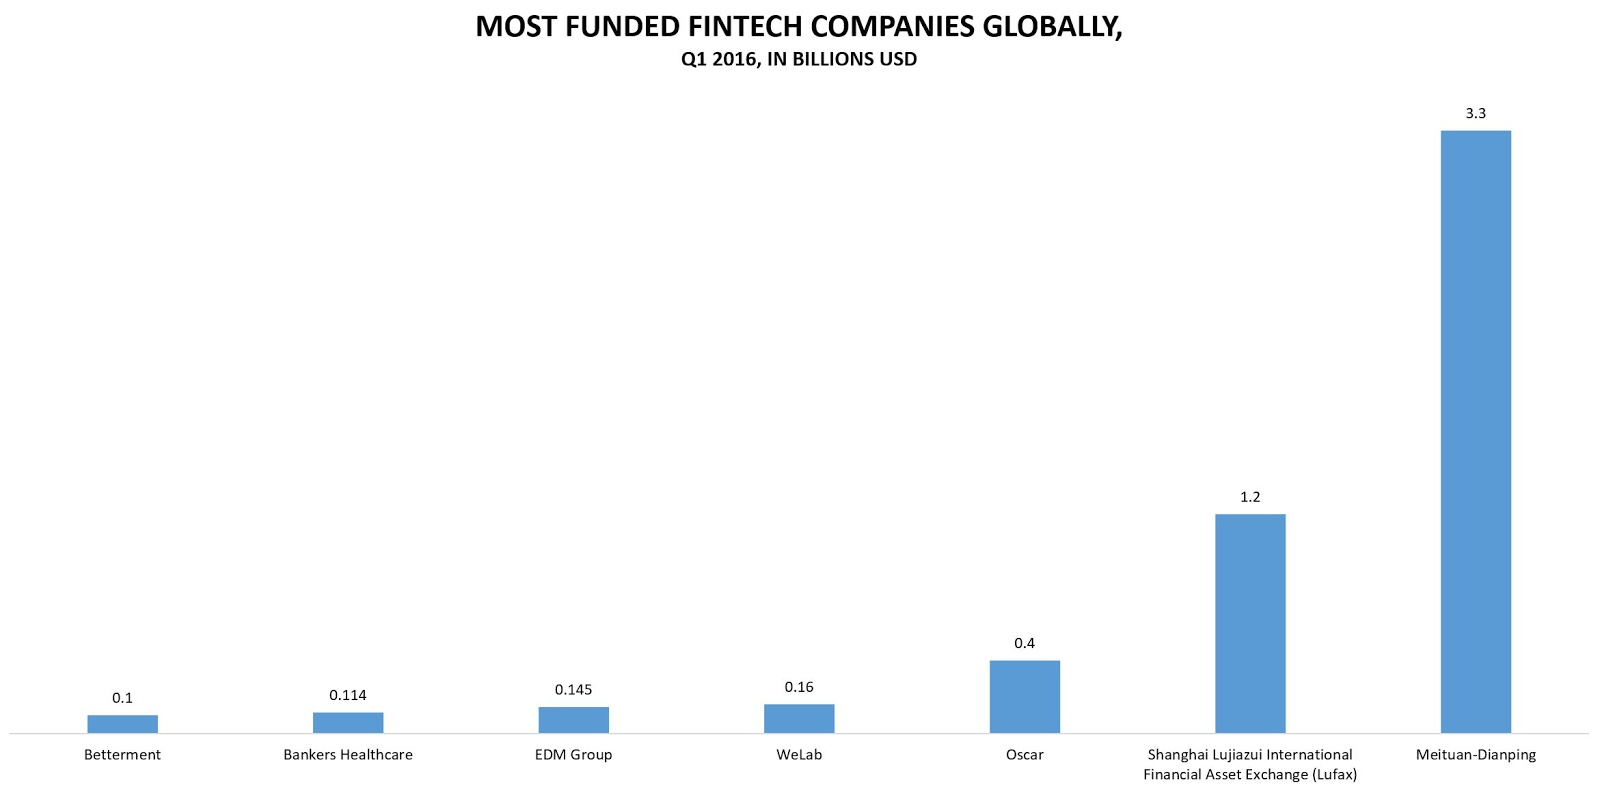 The most funded FinTech companies globally in Q1 2016